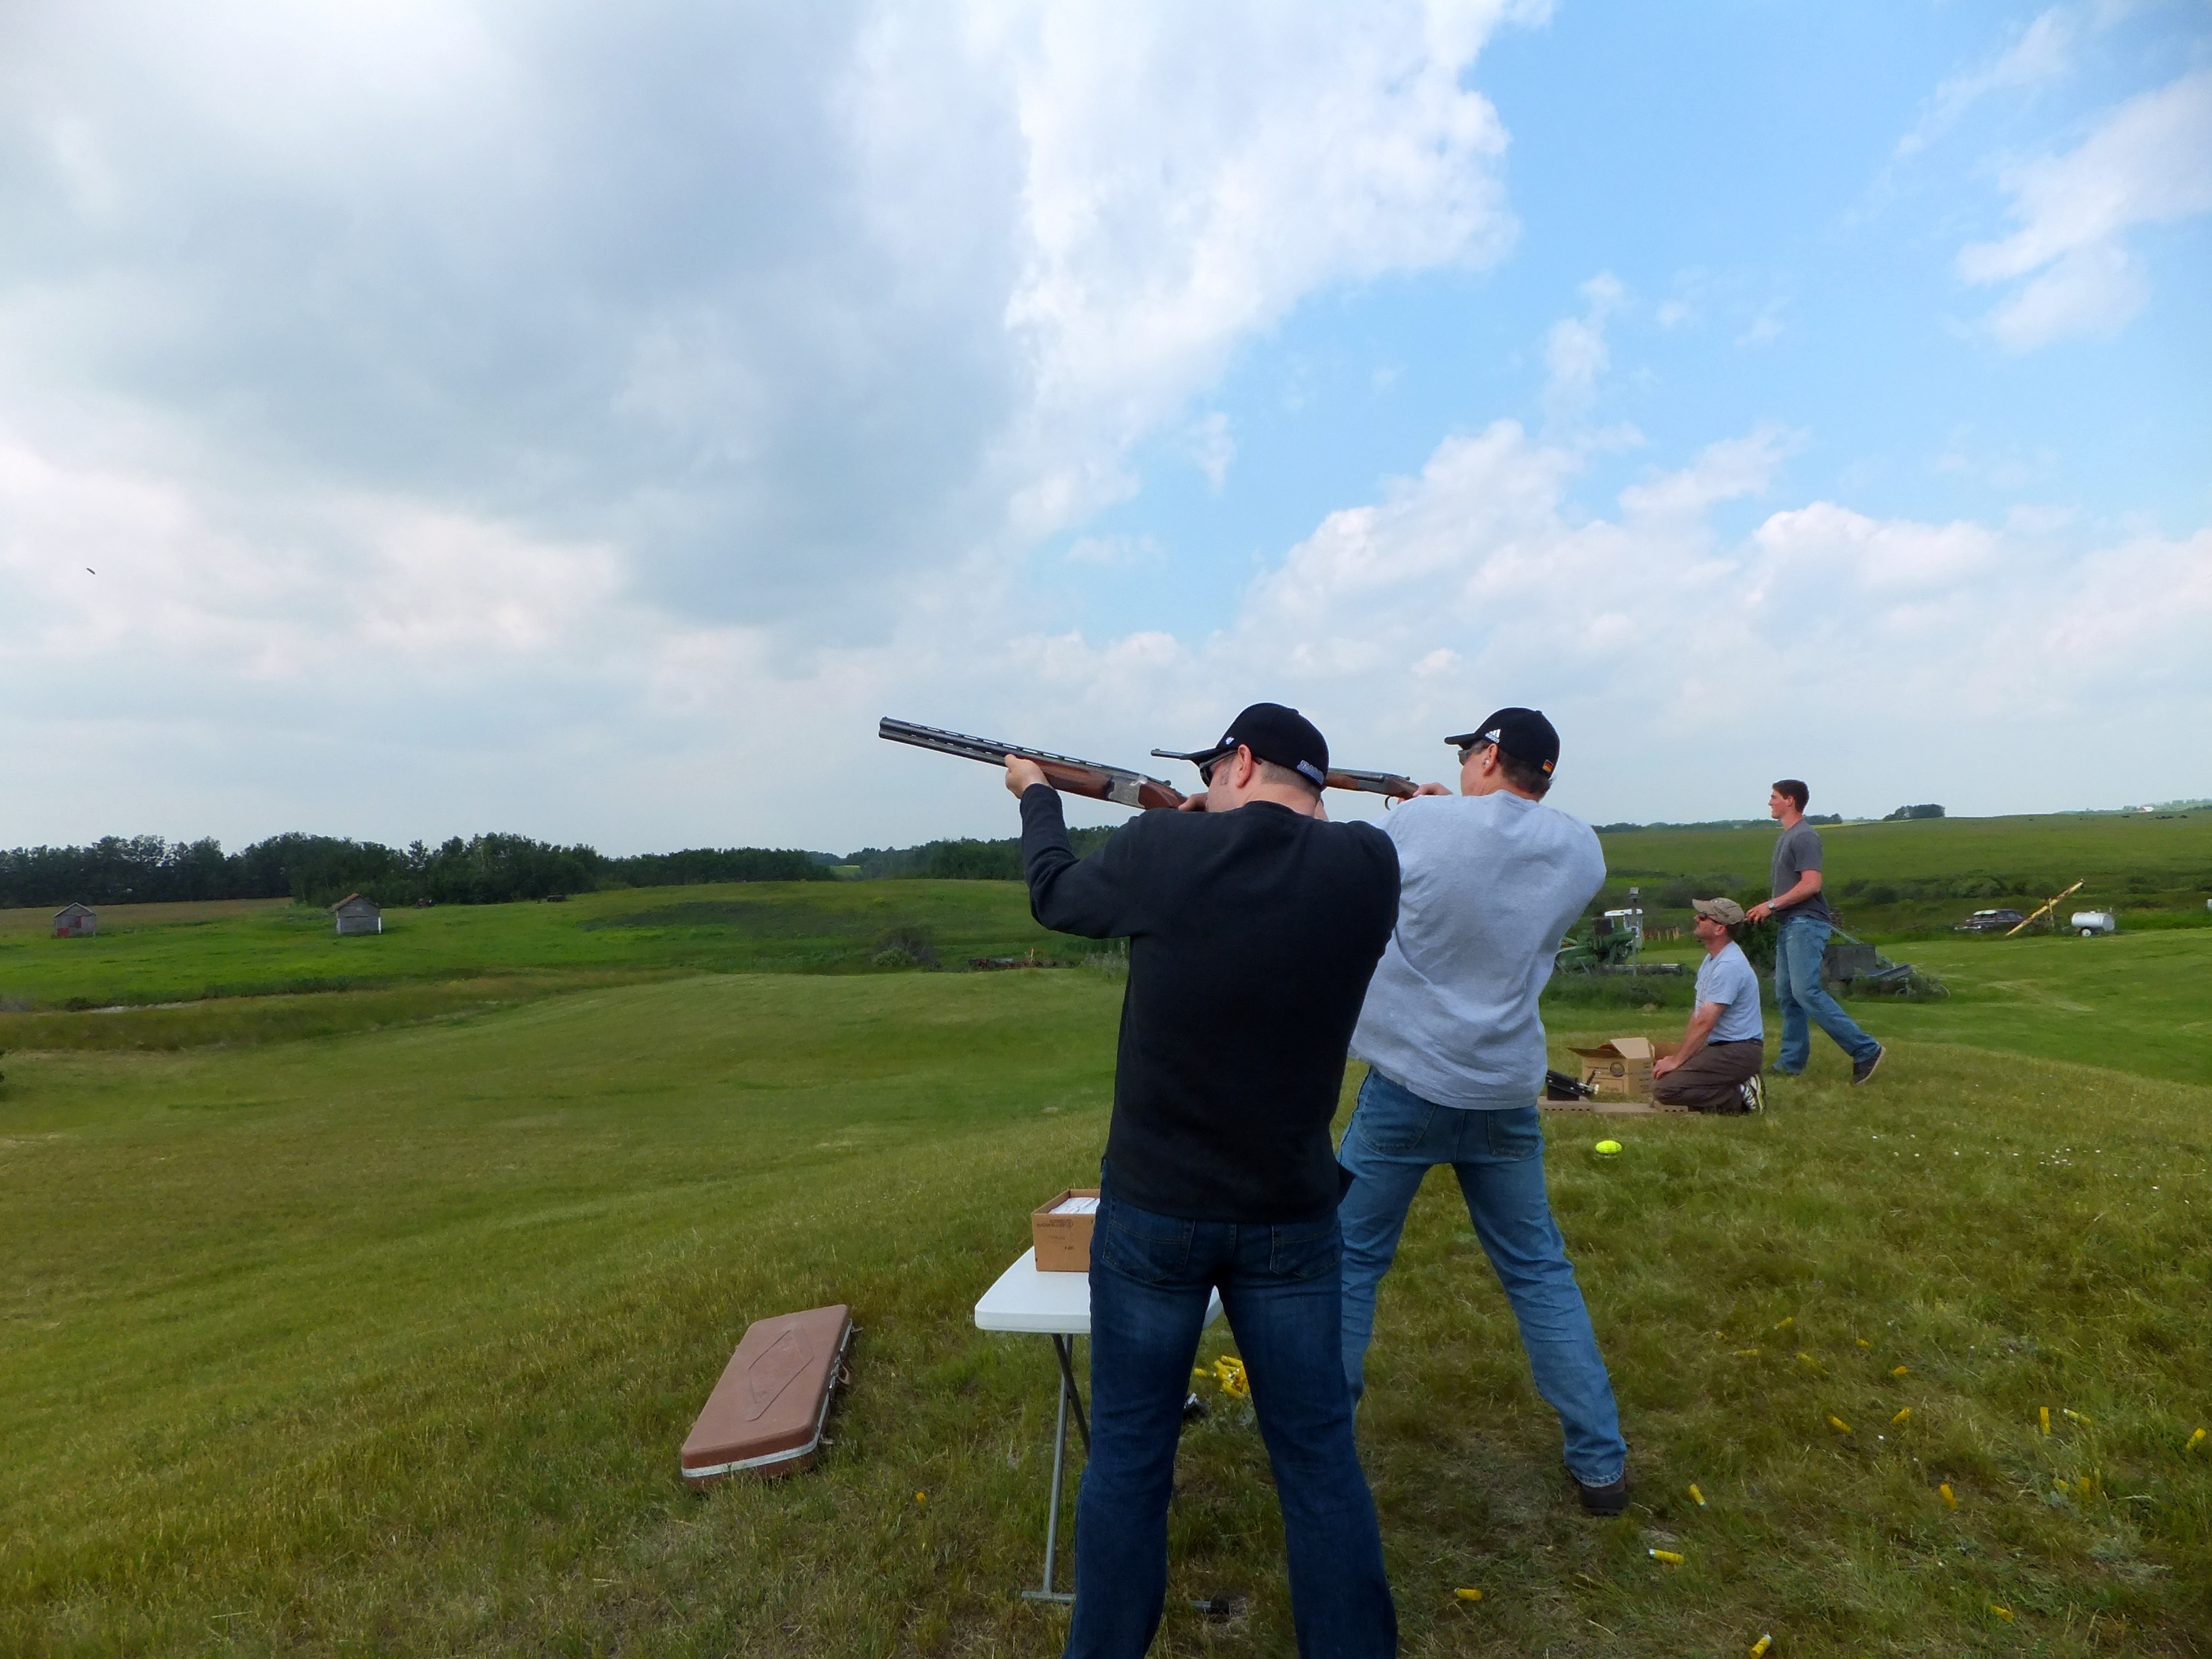 Video From The Mount Olive Men's Trap Shooting Event - July 12th 2014 - Image 3